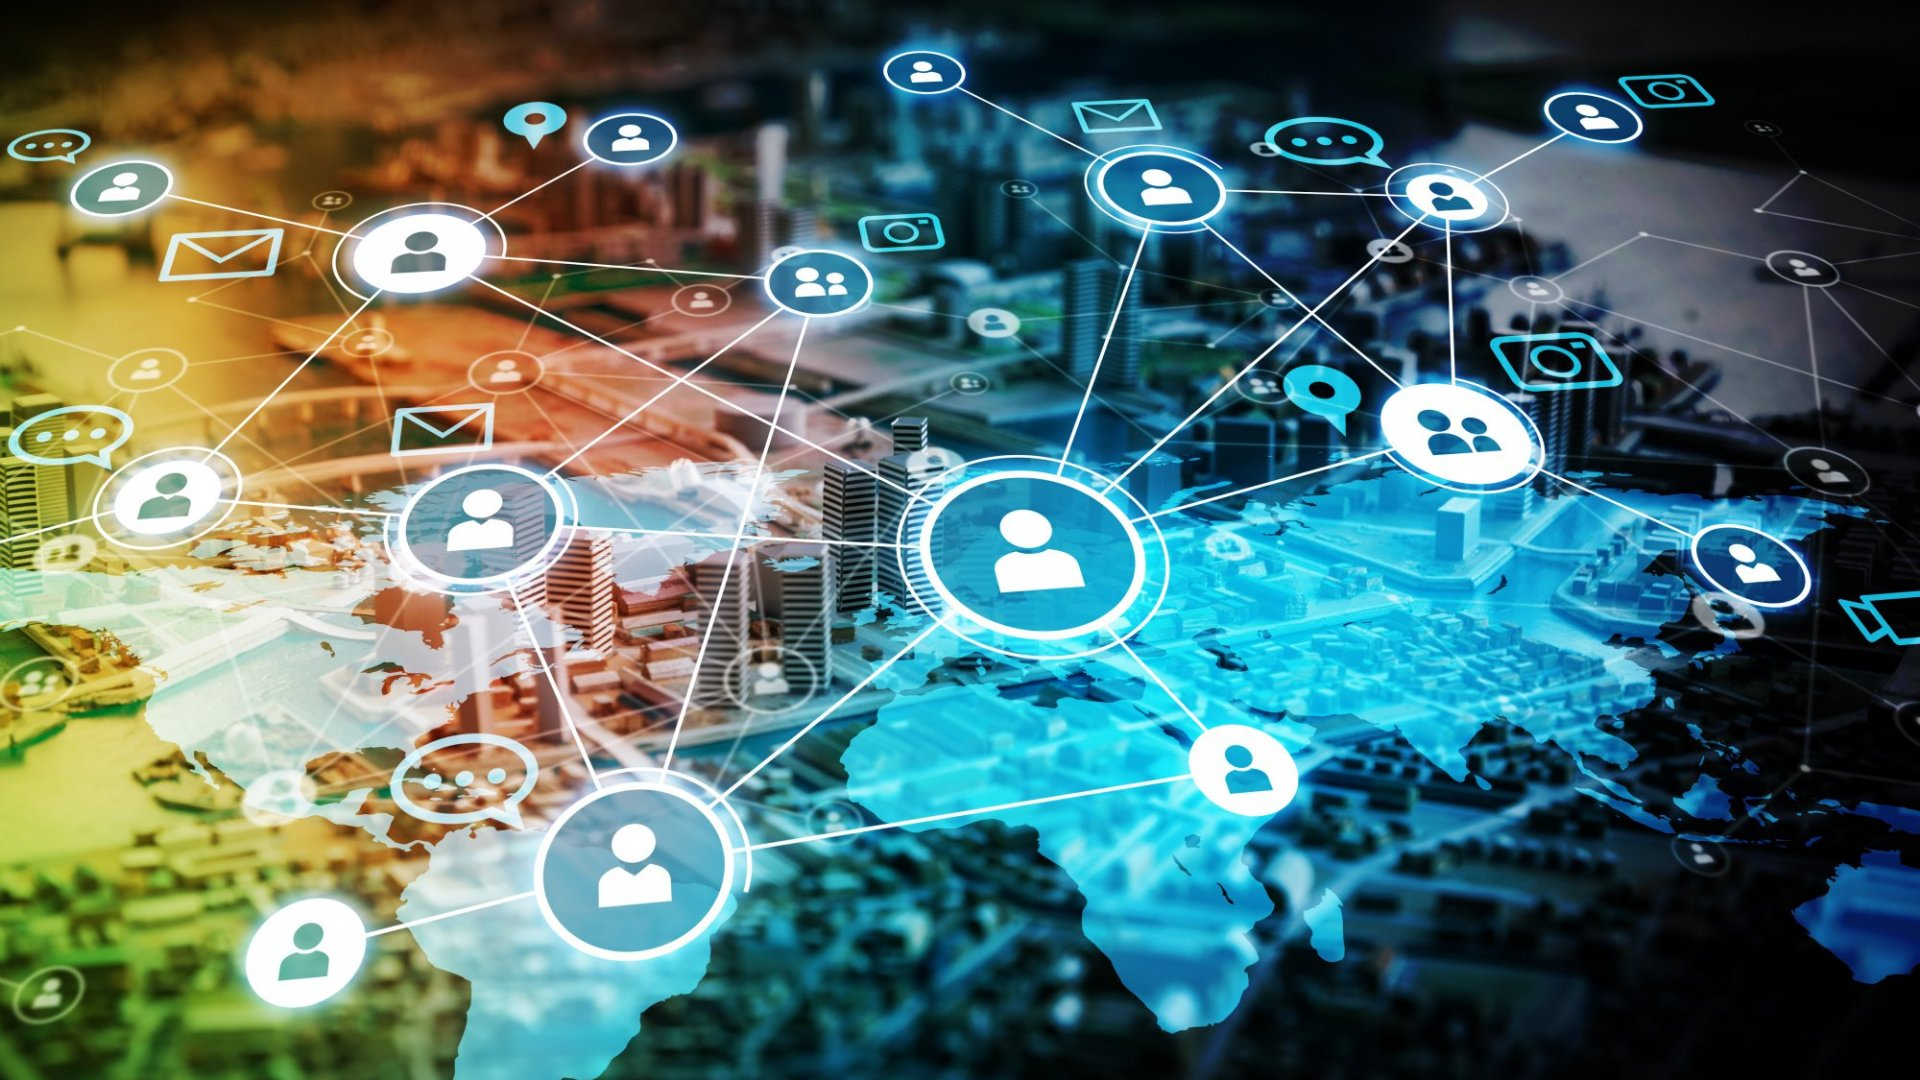 Are Crowdsourcing and Gig Economies Really the Future?